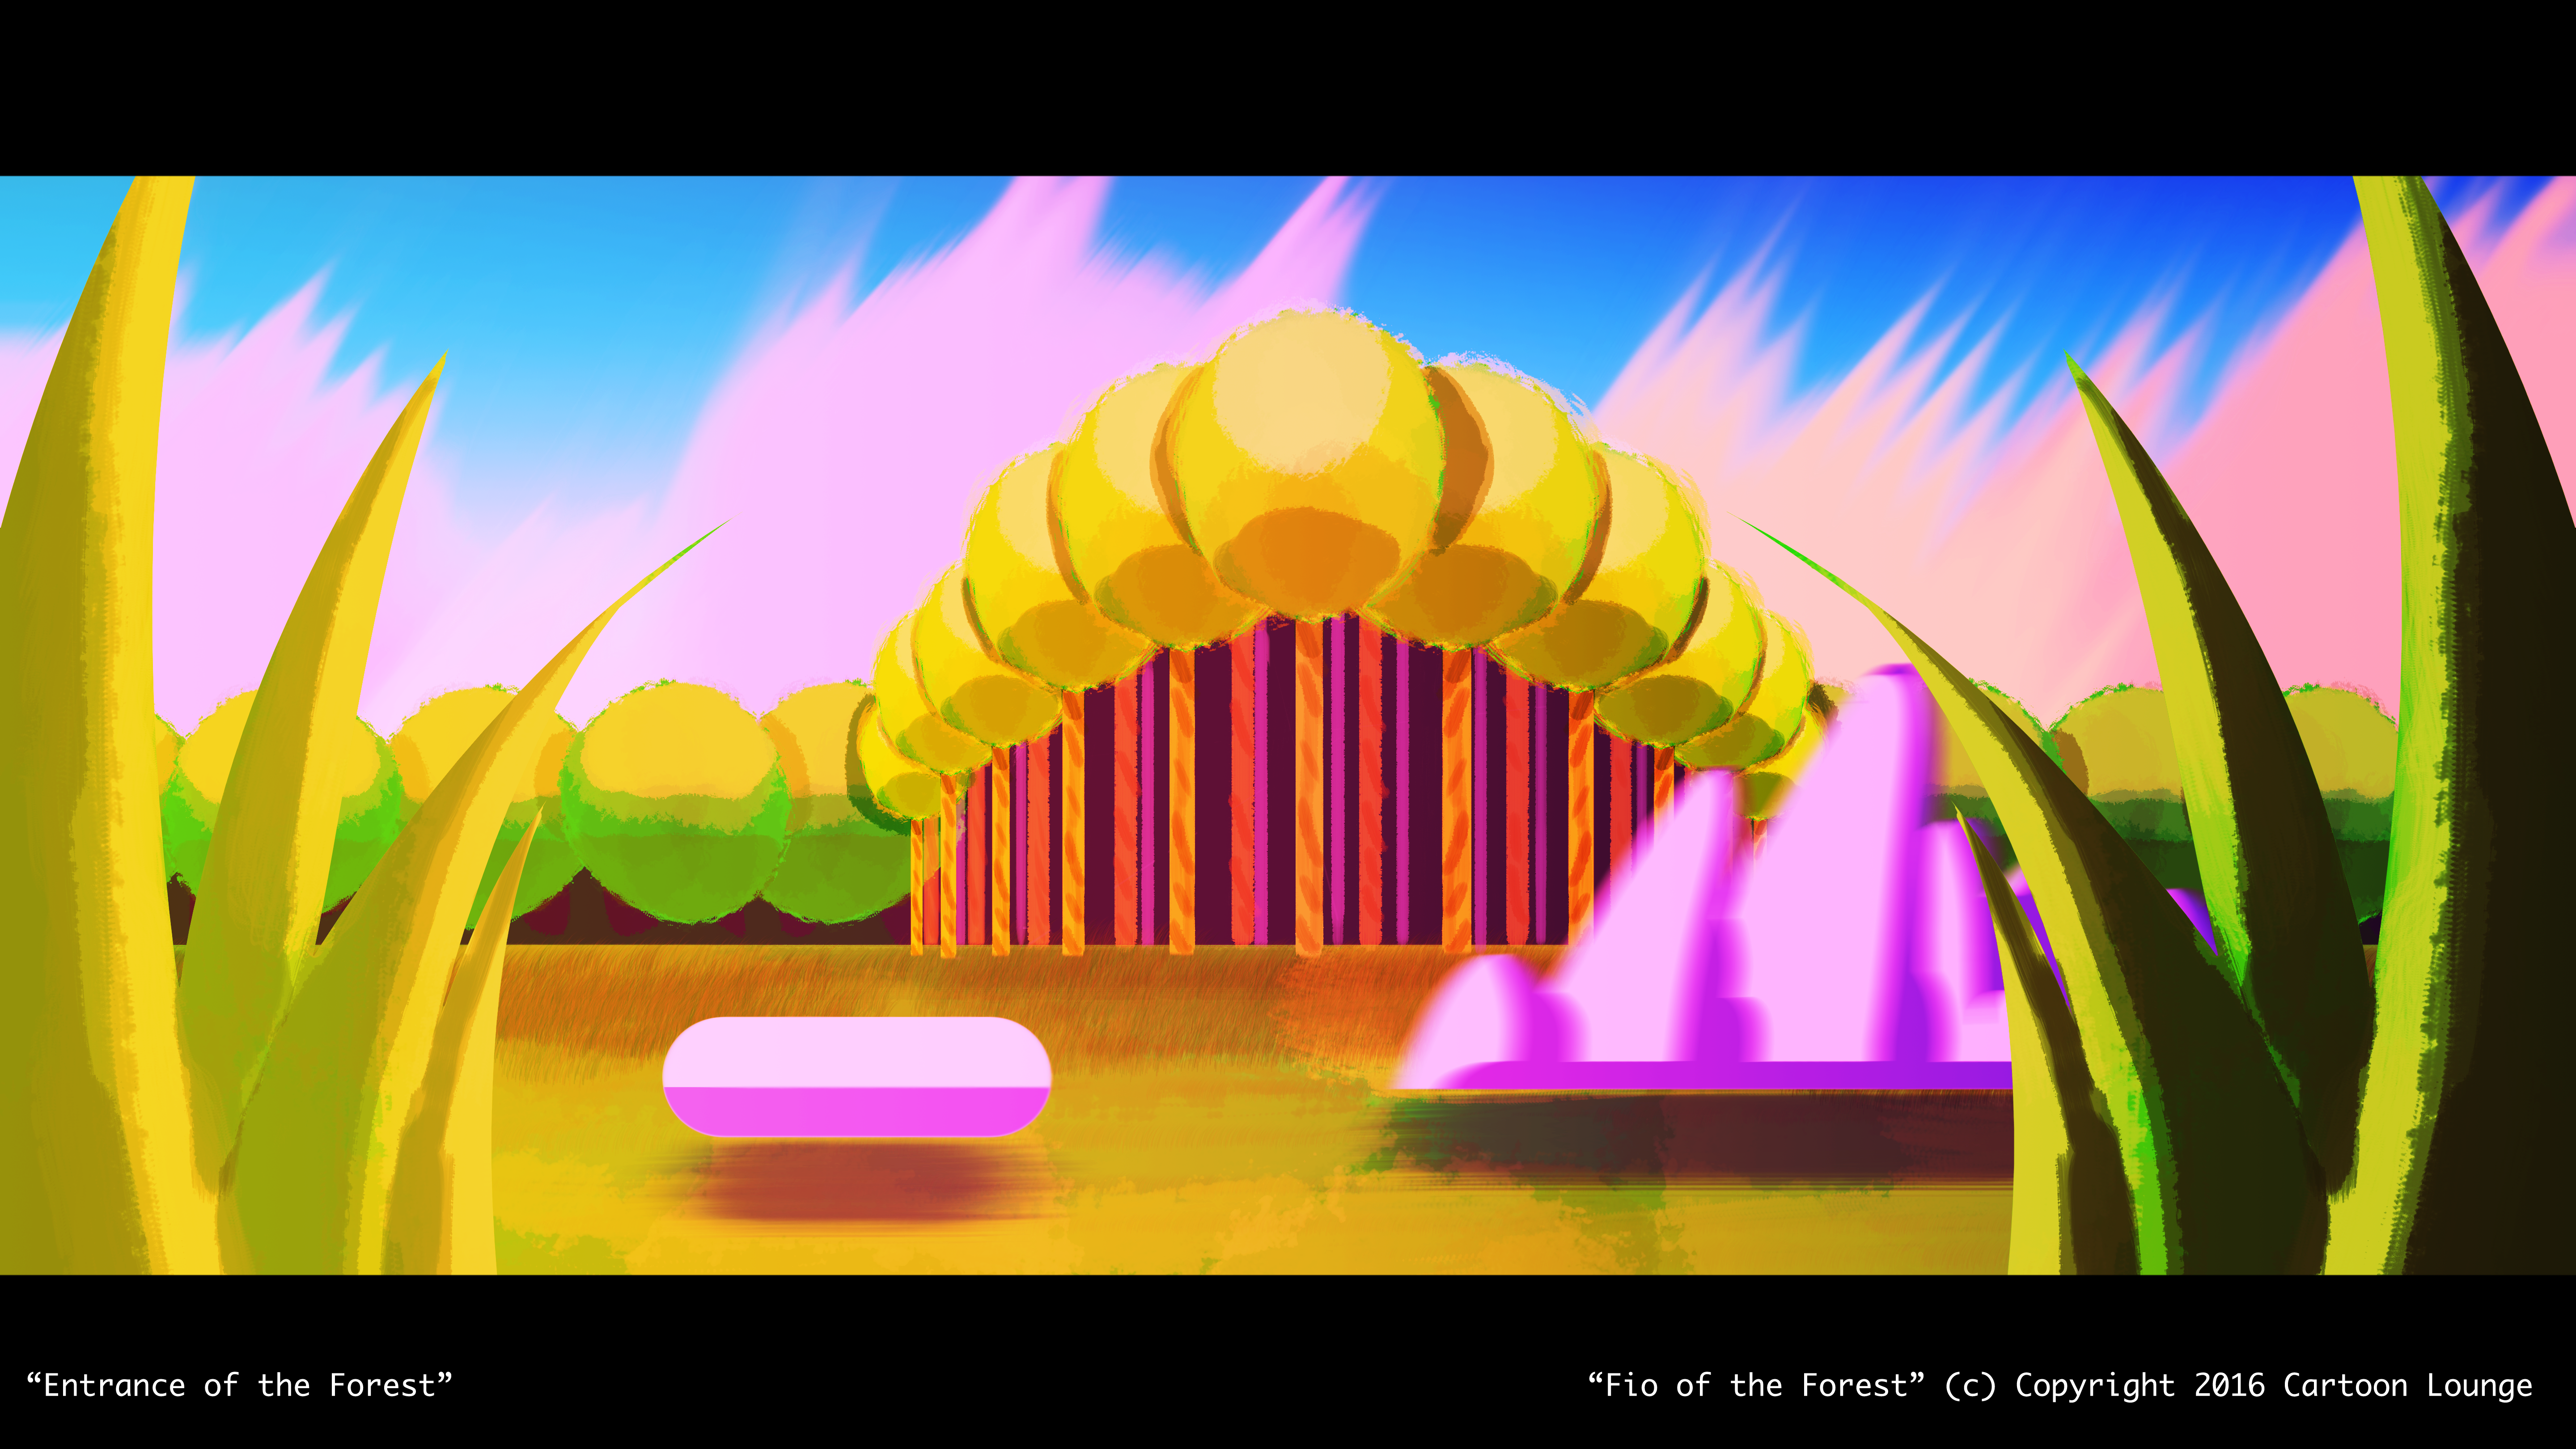 Fio and the Forest Conceptual Art